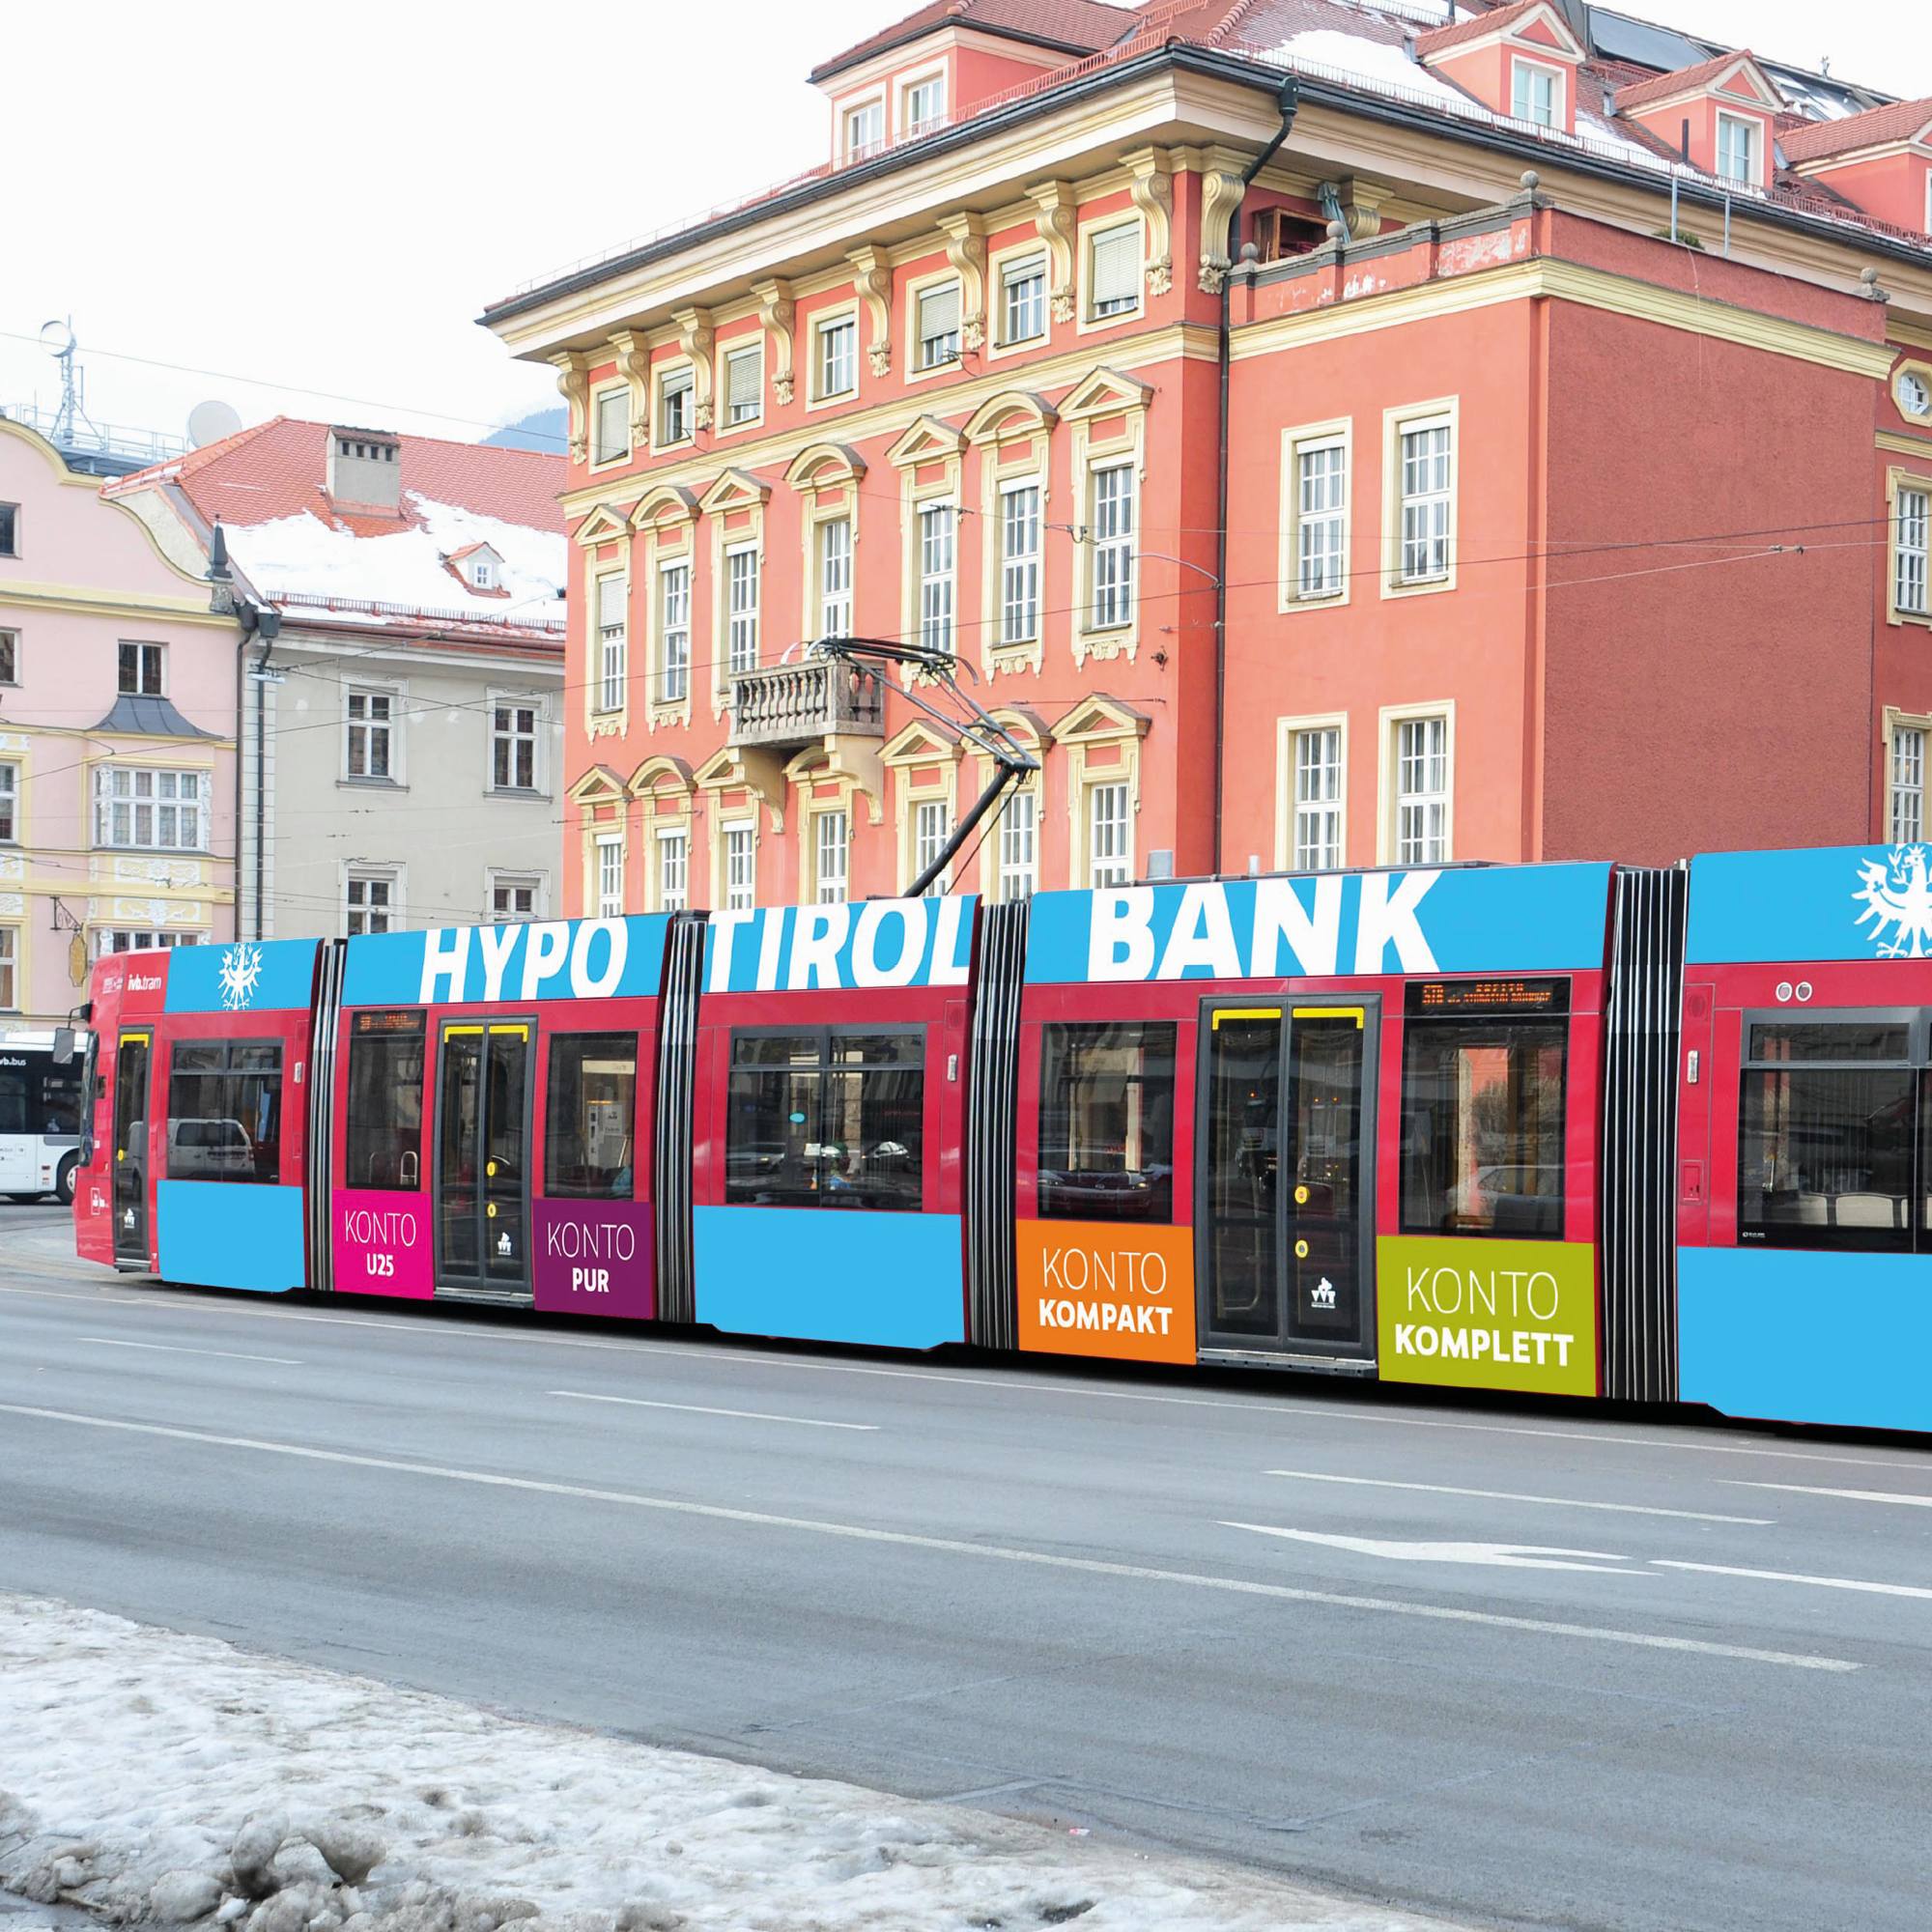 TRAM-Branding (Preview). Hypo Tirol Bank The Great Creative Shark